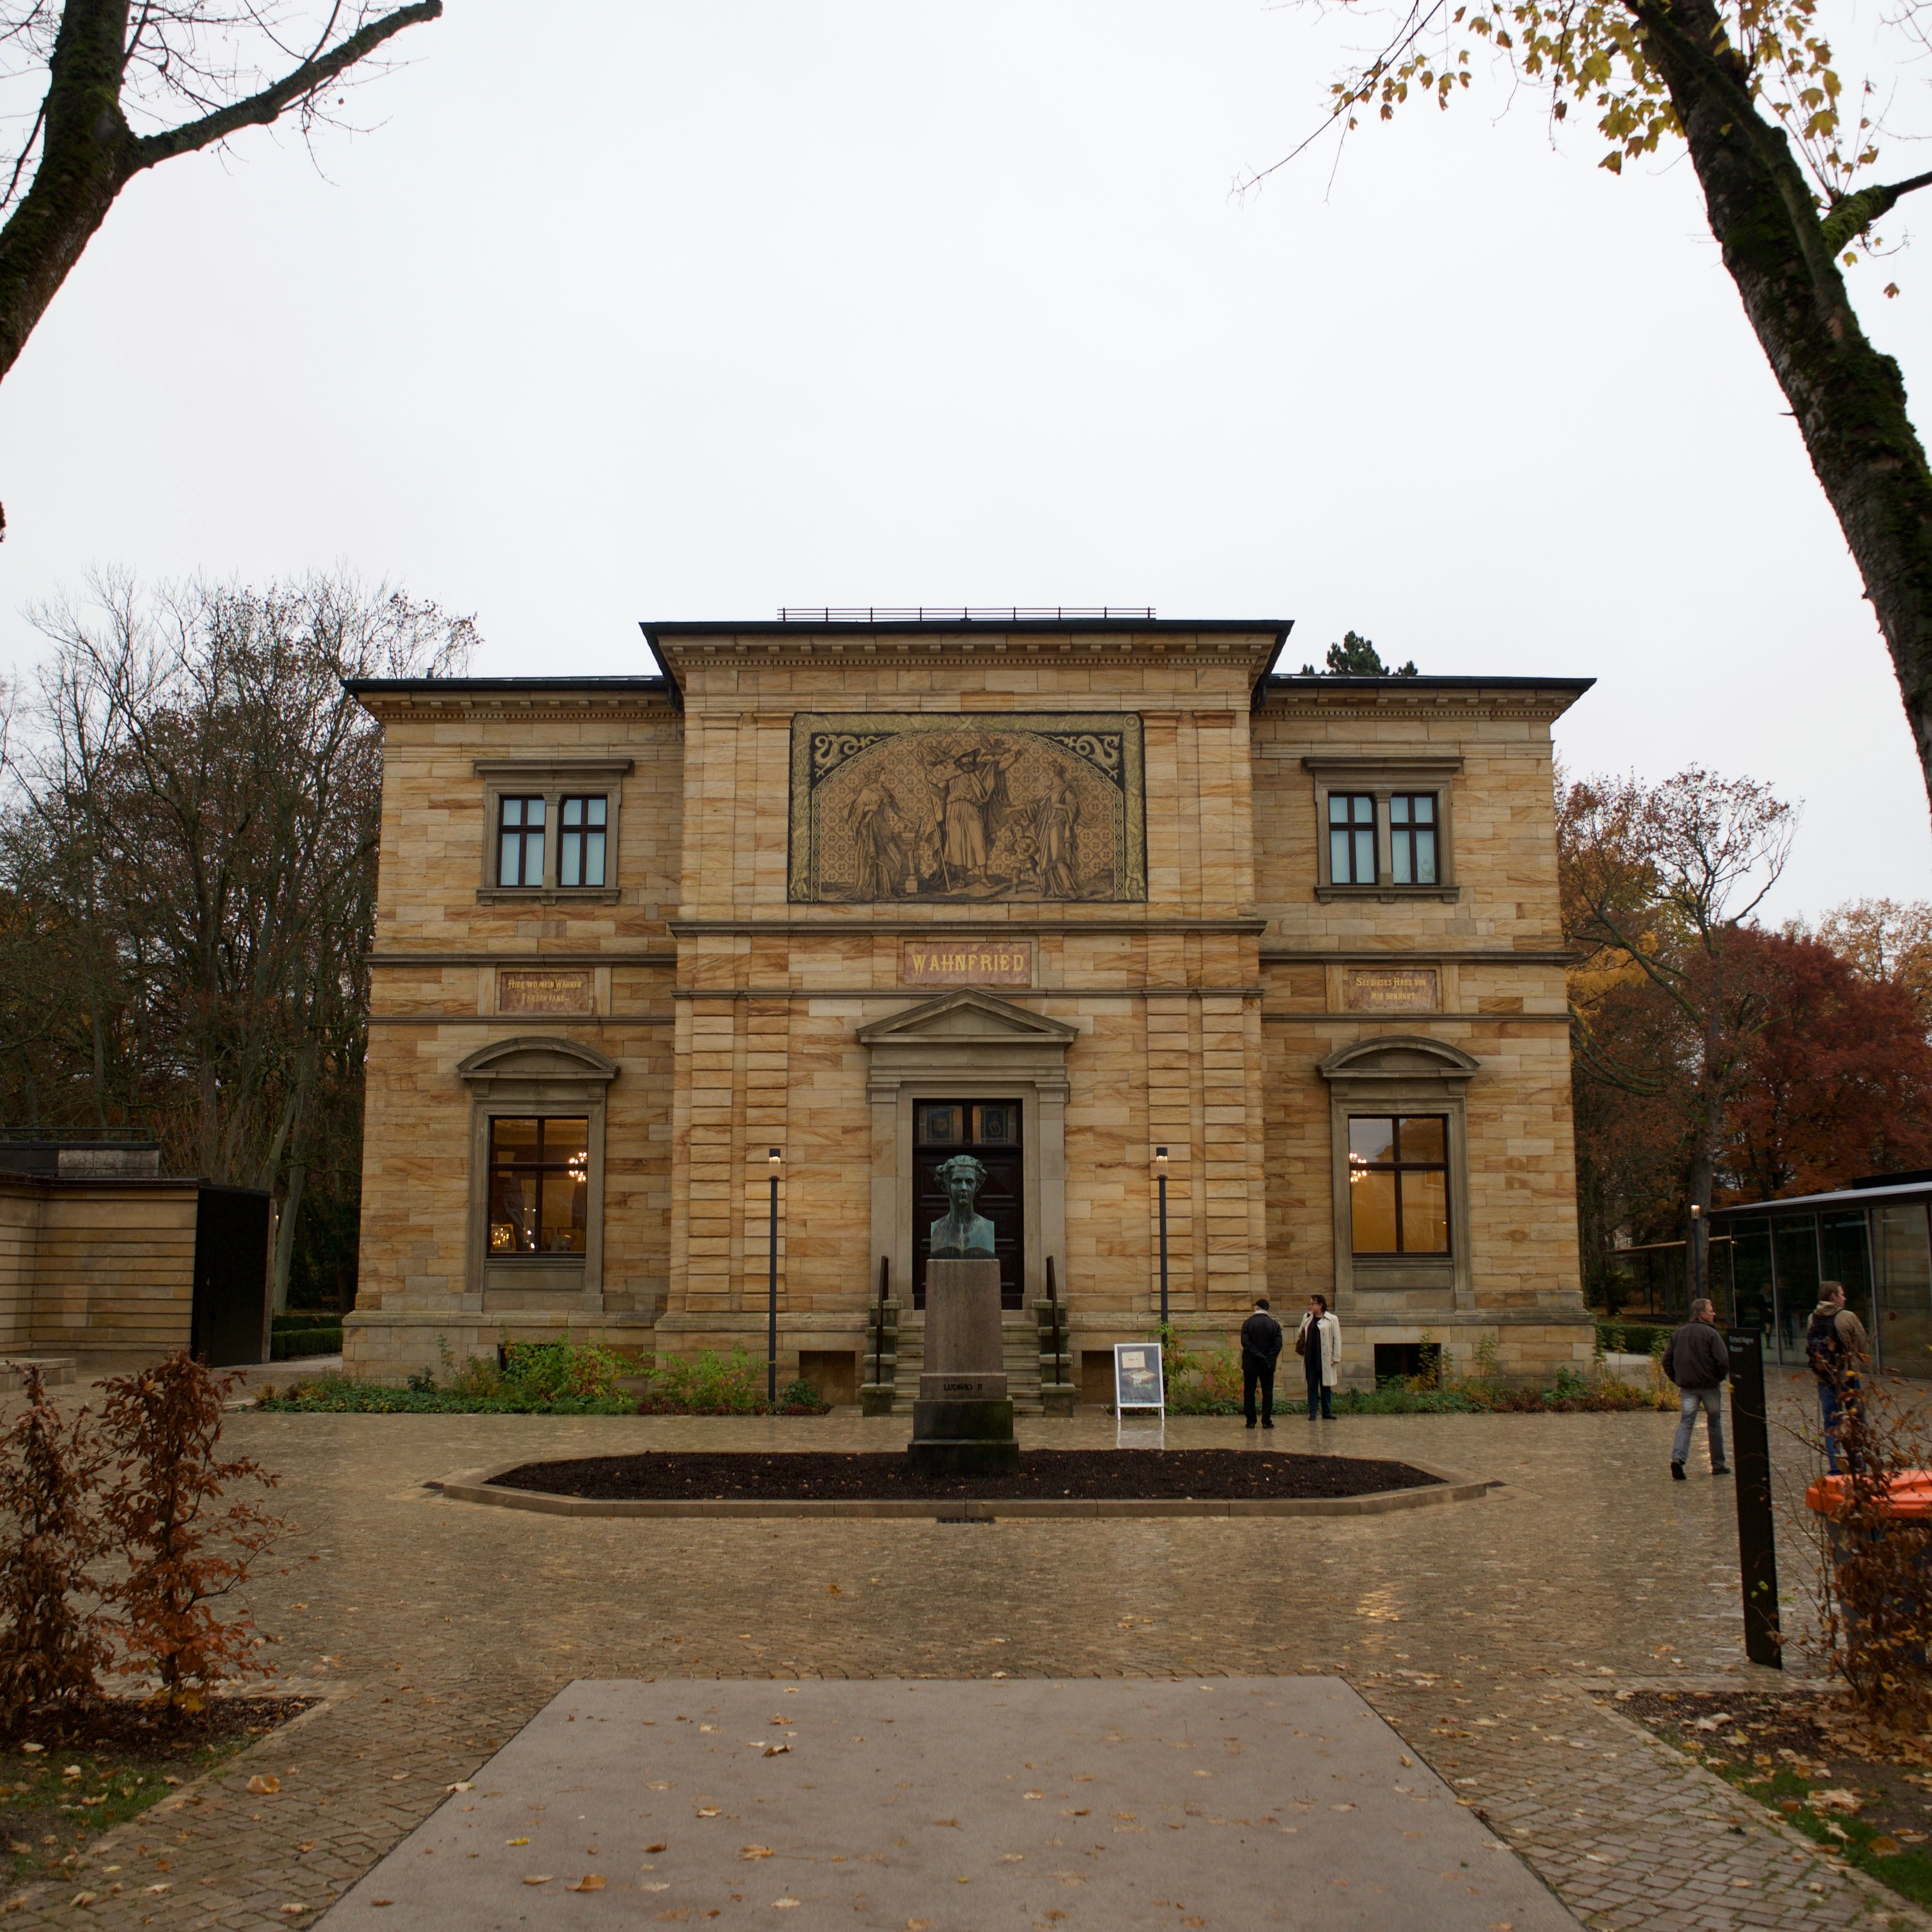 Wagner's house. Willa Wahnfried.